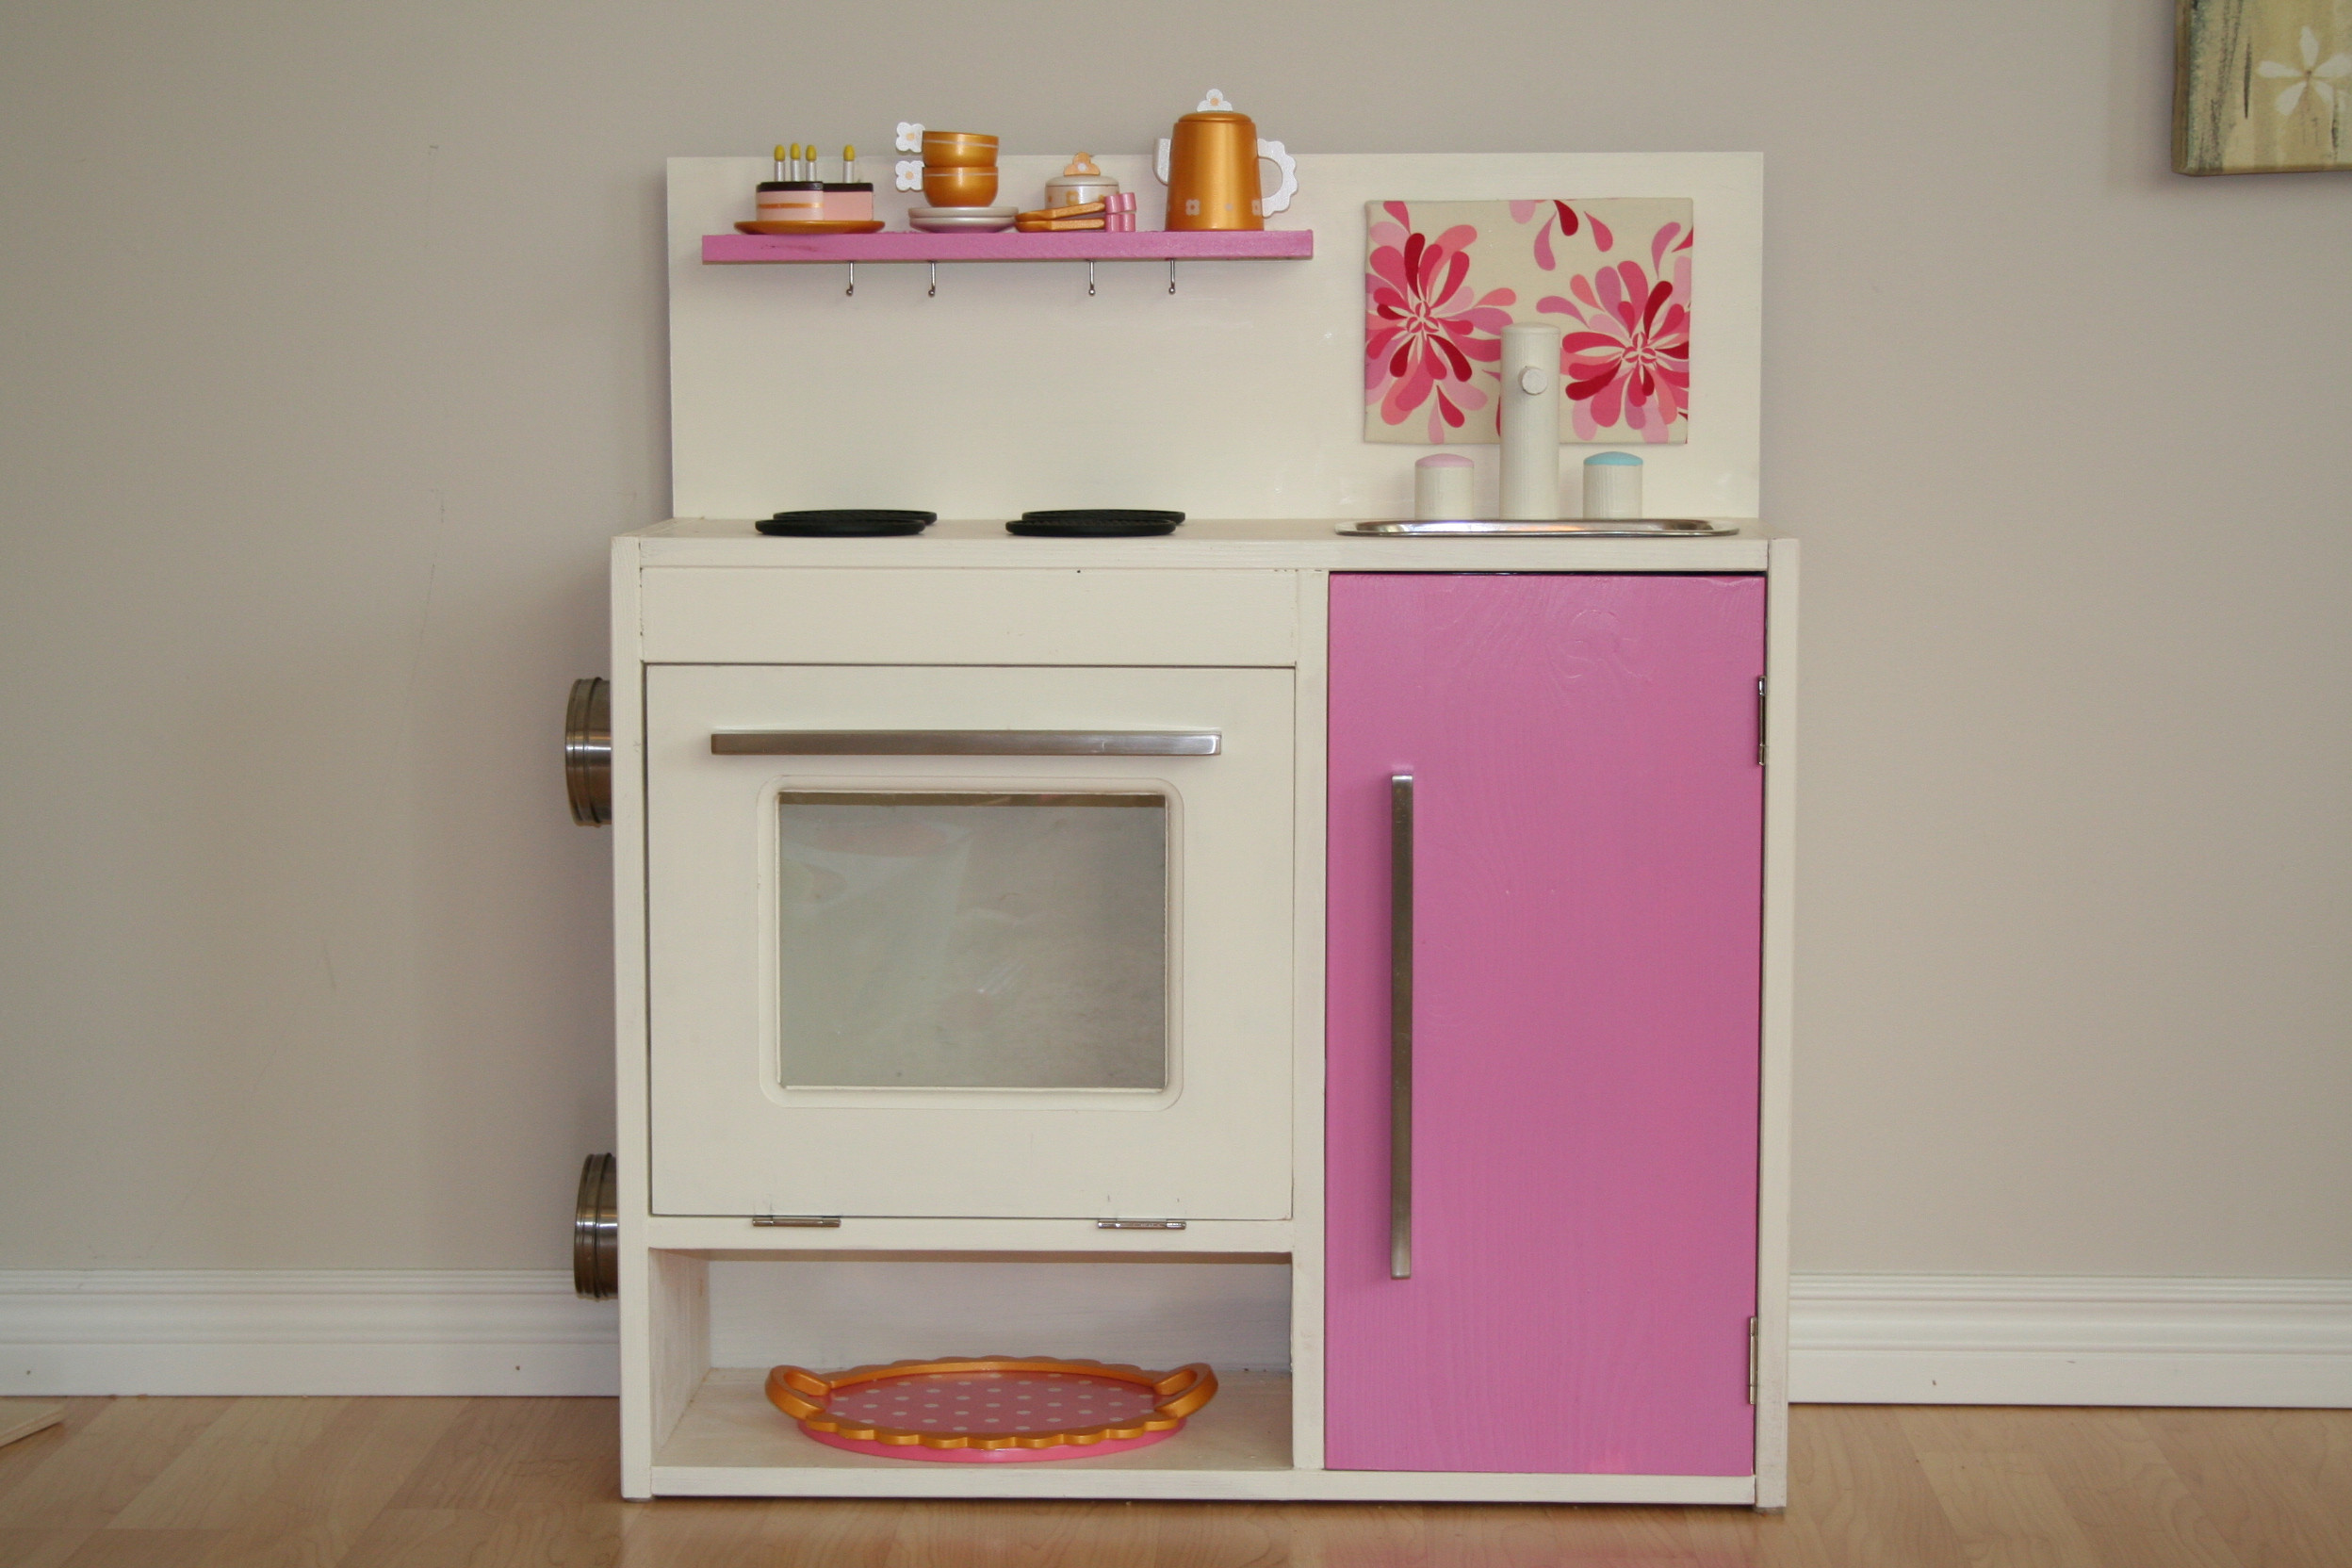 Best ideas about Kitchen Hacks DIY . Save or Pin 10 Cool DIY IKEA Play Kitchen Hacks Now.